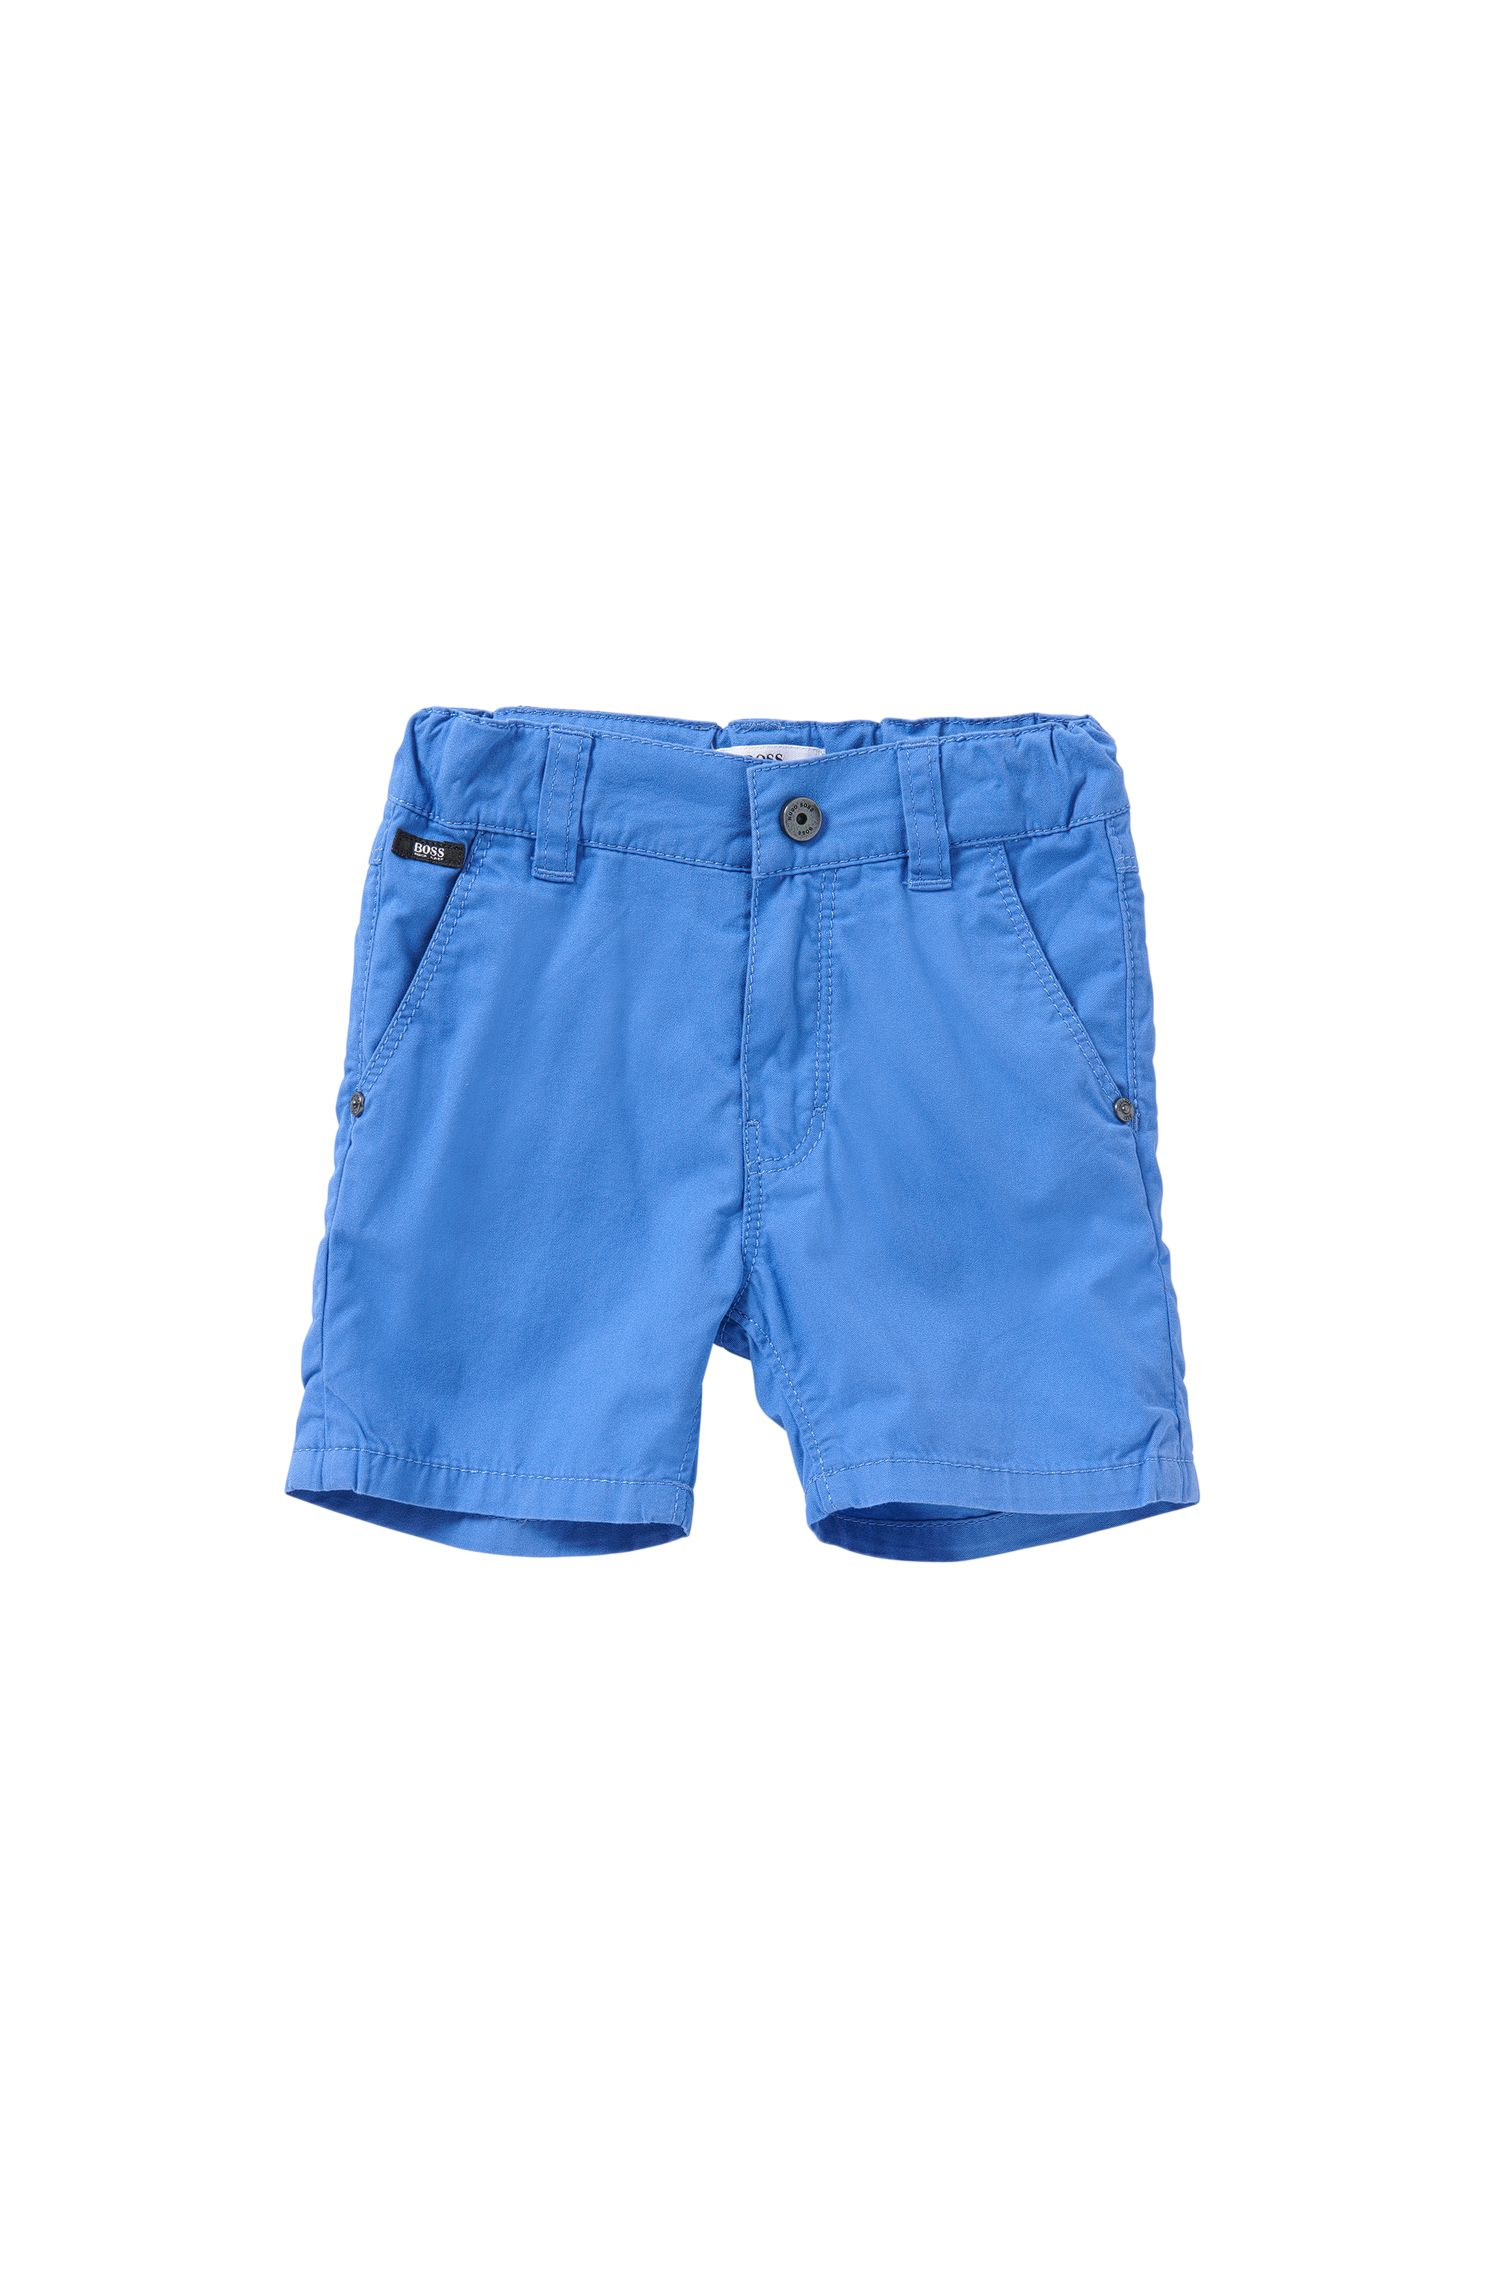 Shorts regular fit en algodón para bebé: 'J04218'